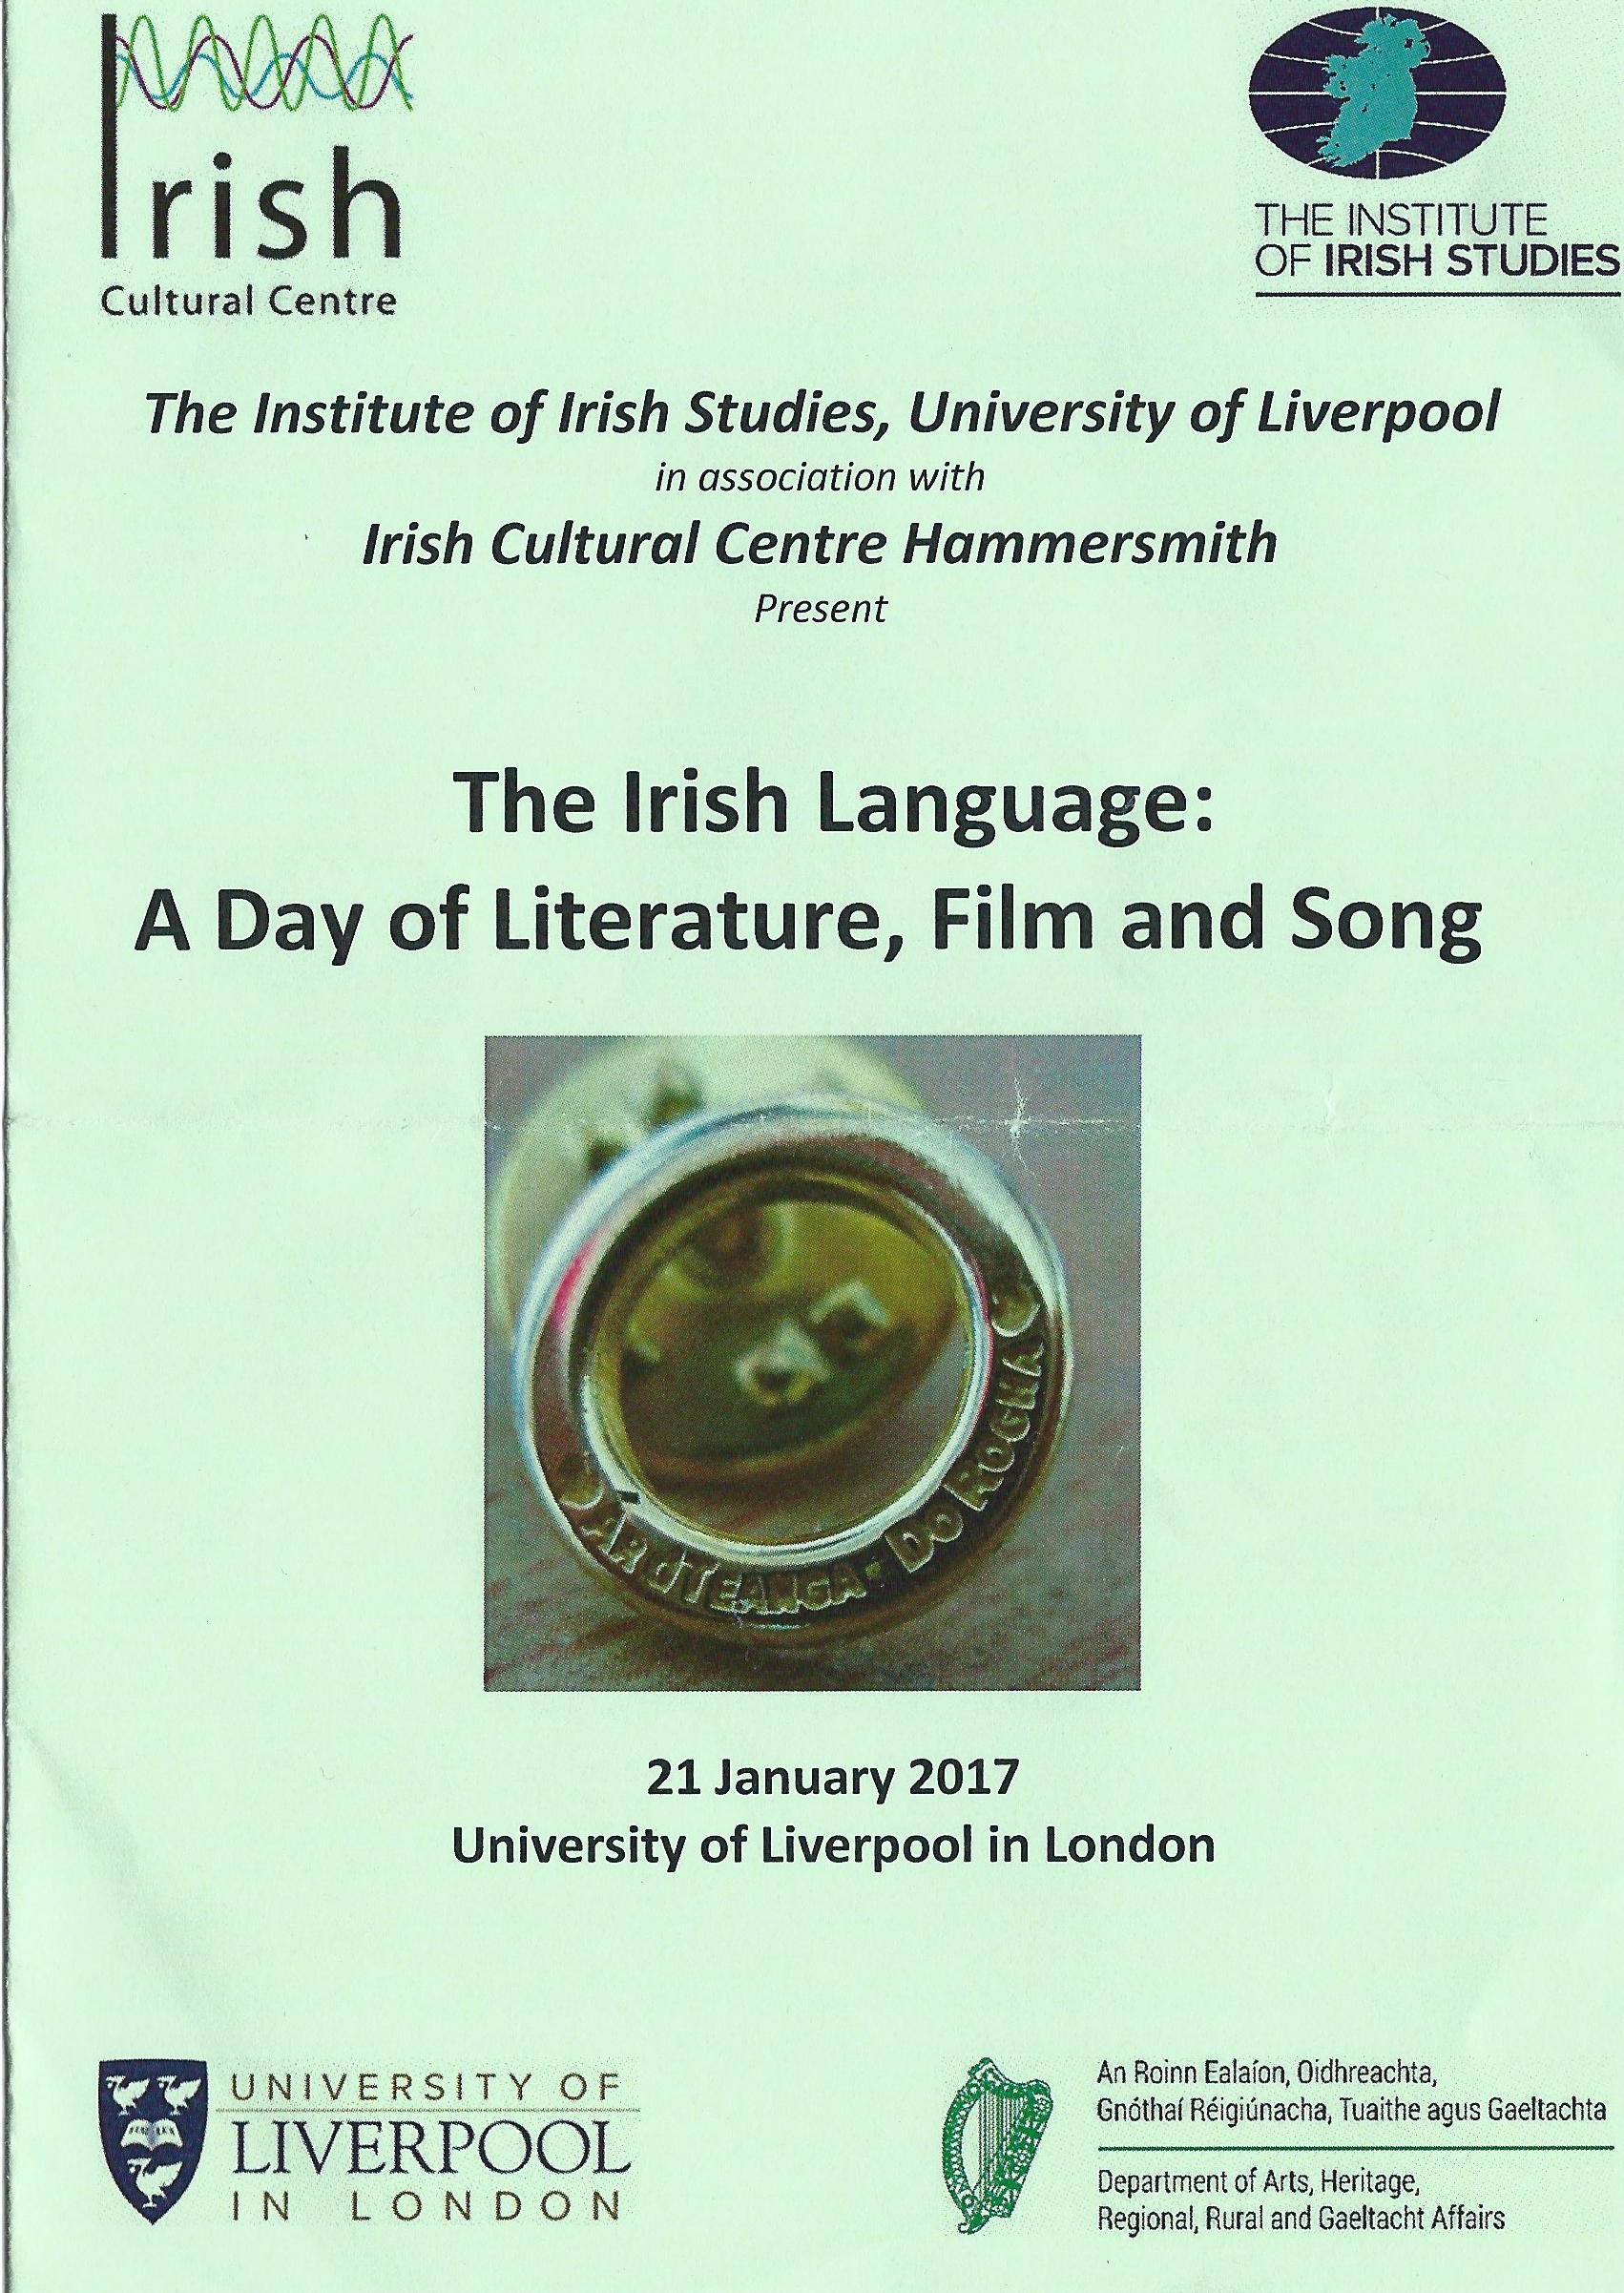 Programme for the day (Designed by Oorothy Lynch)